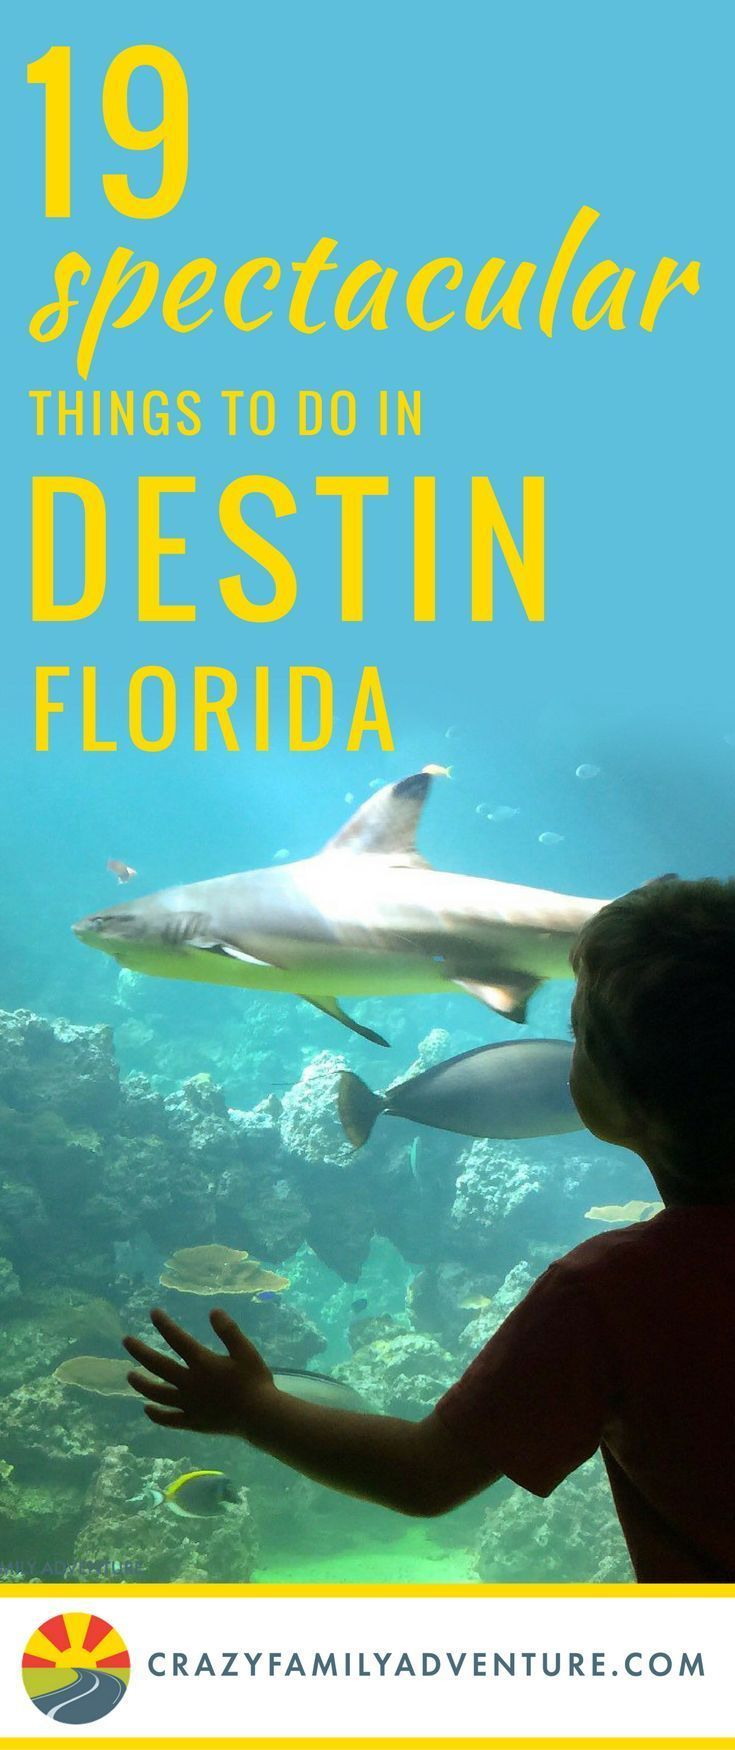 Things to do in Destin Florida on your next family #beach #vacation! There are so many great #restaurants and #activities that you and your #kids will love! Plus some really cool #hotels and resorts.  Plan your #trip now!  #free! #beach #destinations #fun #thingstodo #withkids #Florida #roadtrip